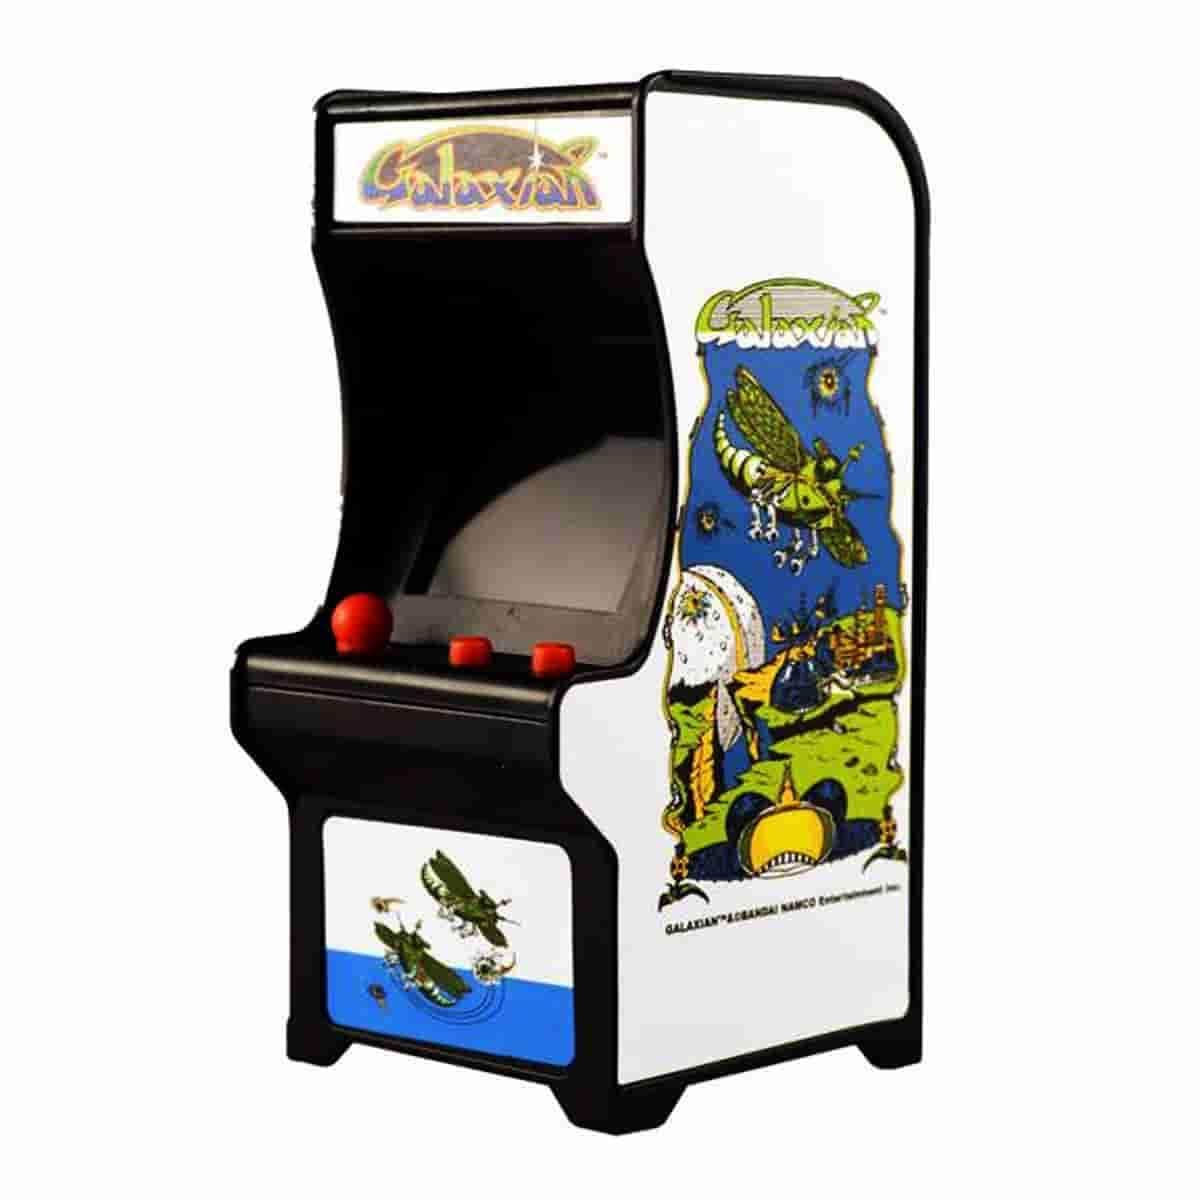 Galaxian Mini Playable Tiny Arcade Machine by Super Impulse - iamRetro.com